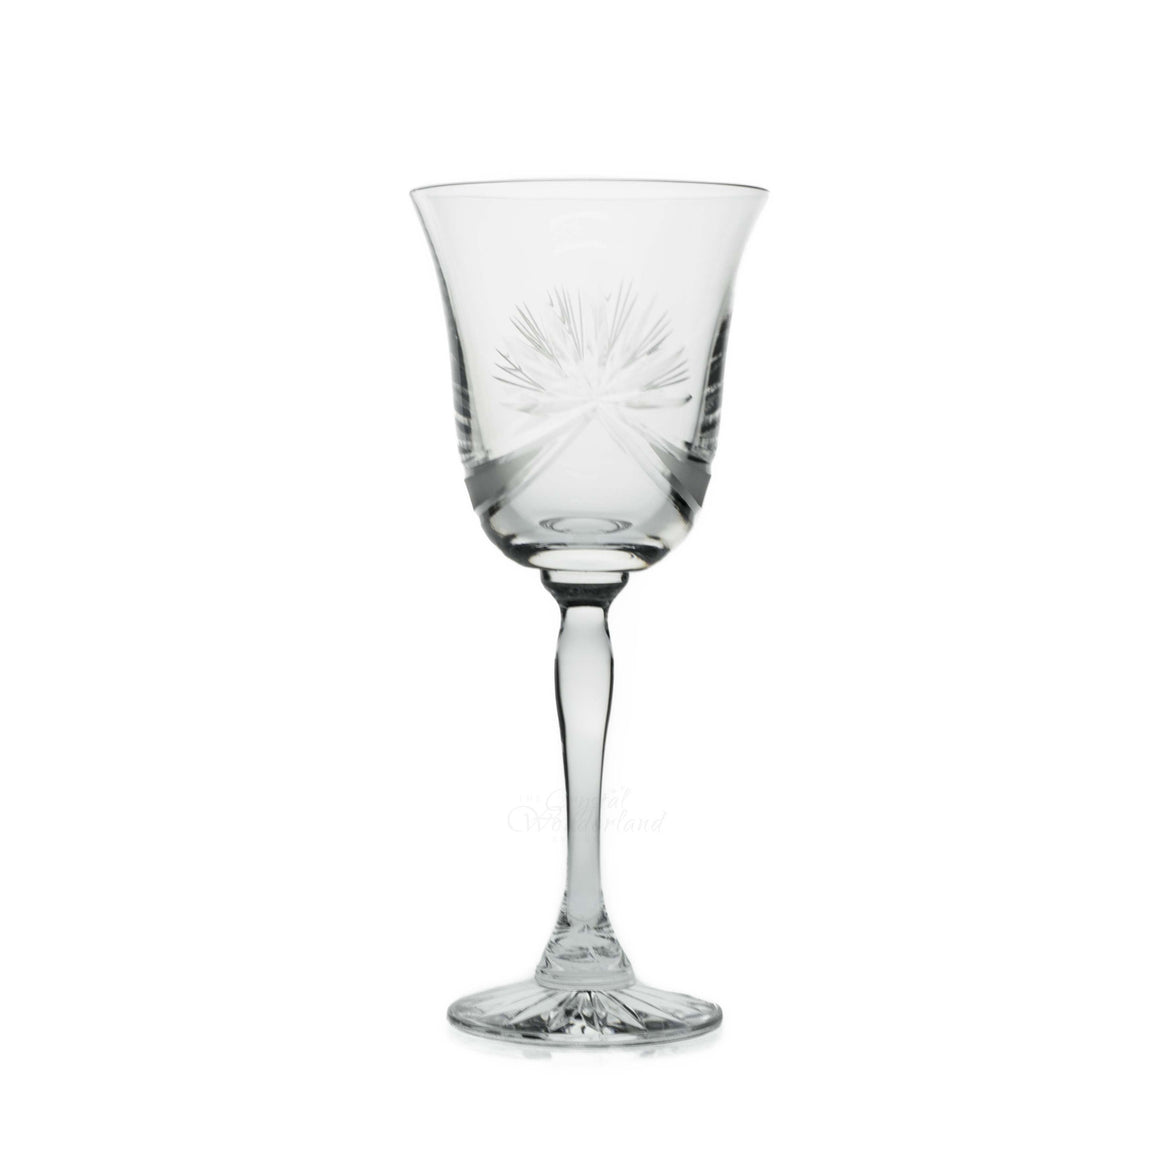 Olymp Crystal Goblets, Set of 6 - The Crystal Wonderland